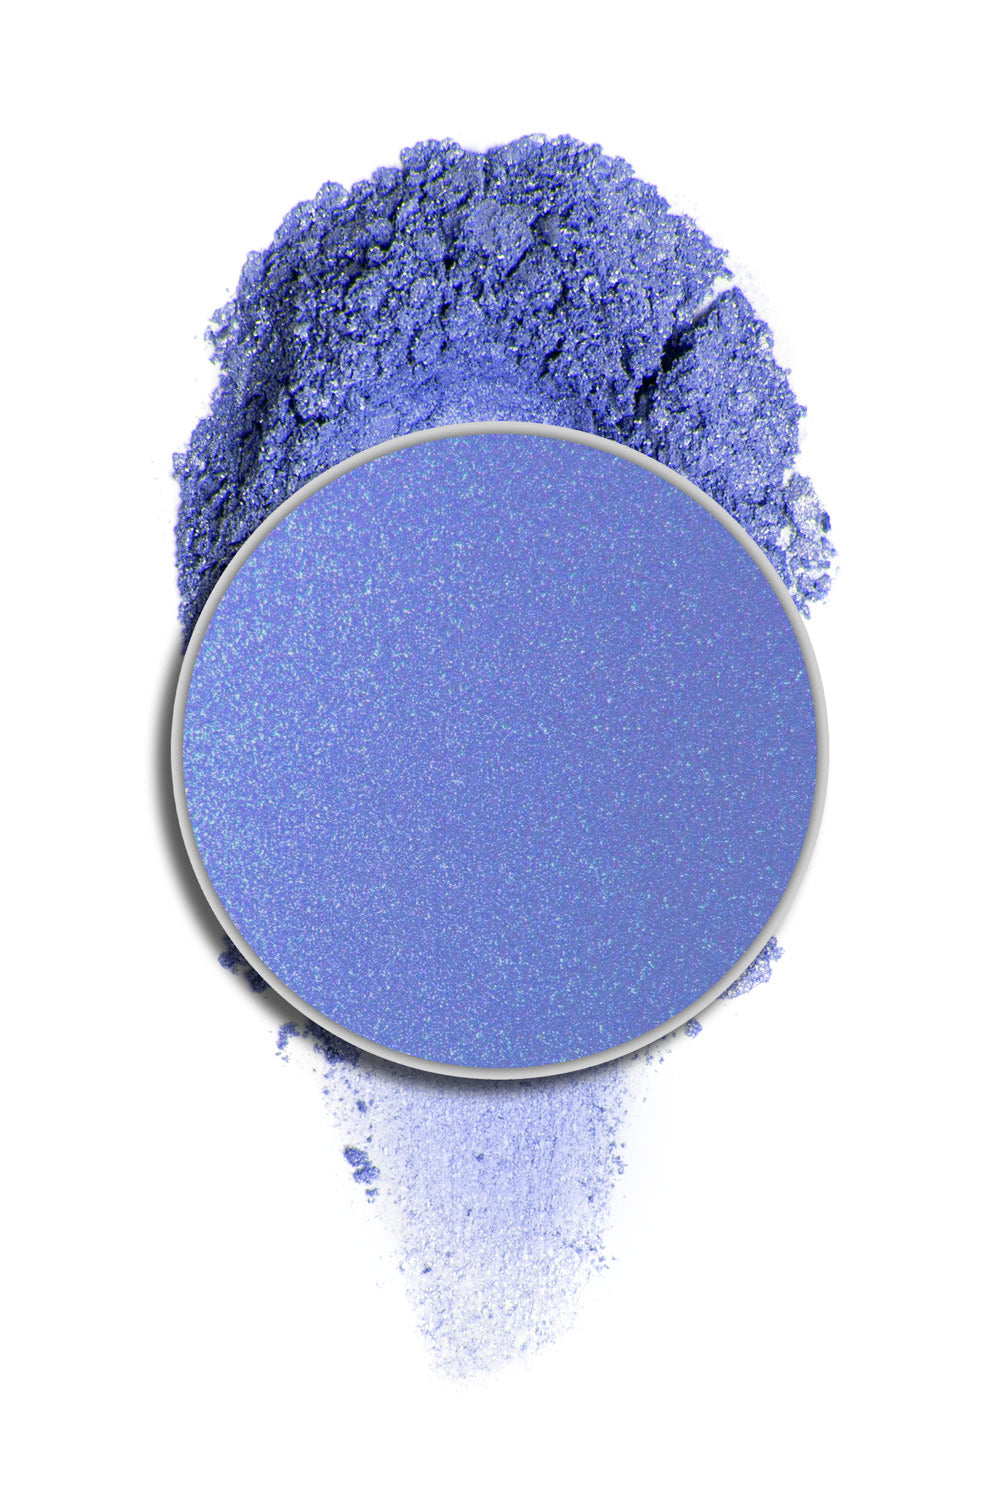 Blueberry - Type 1 Eyeshadow Pan